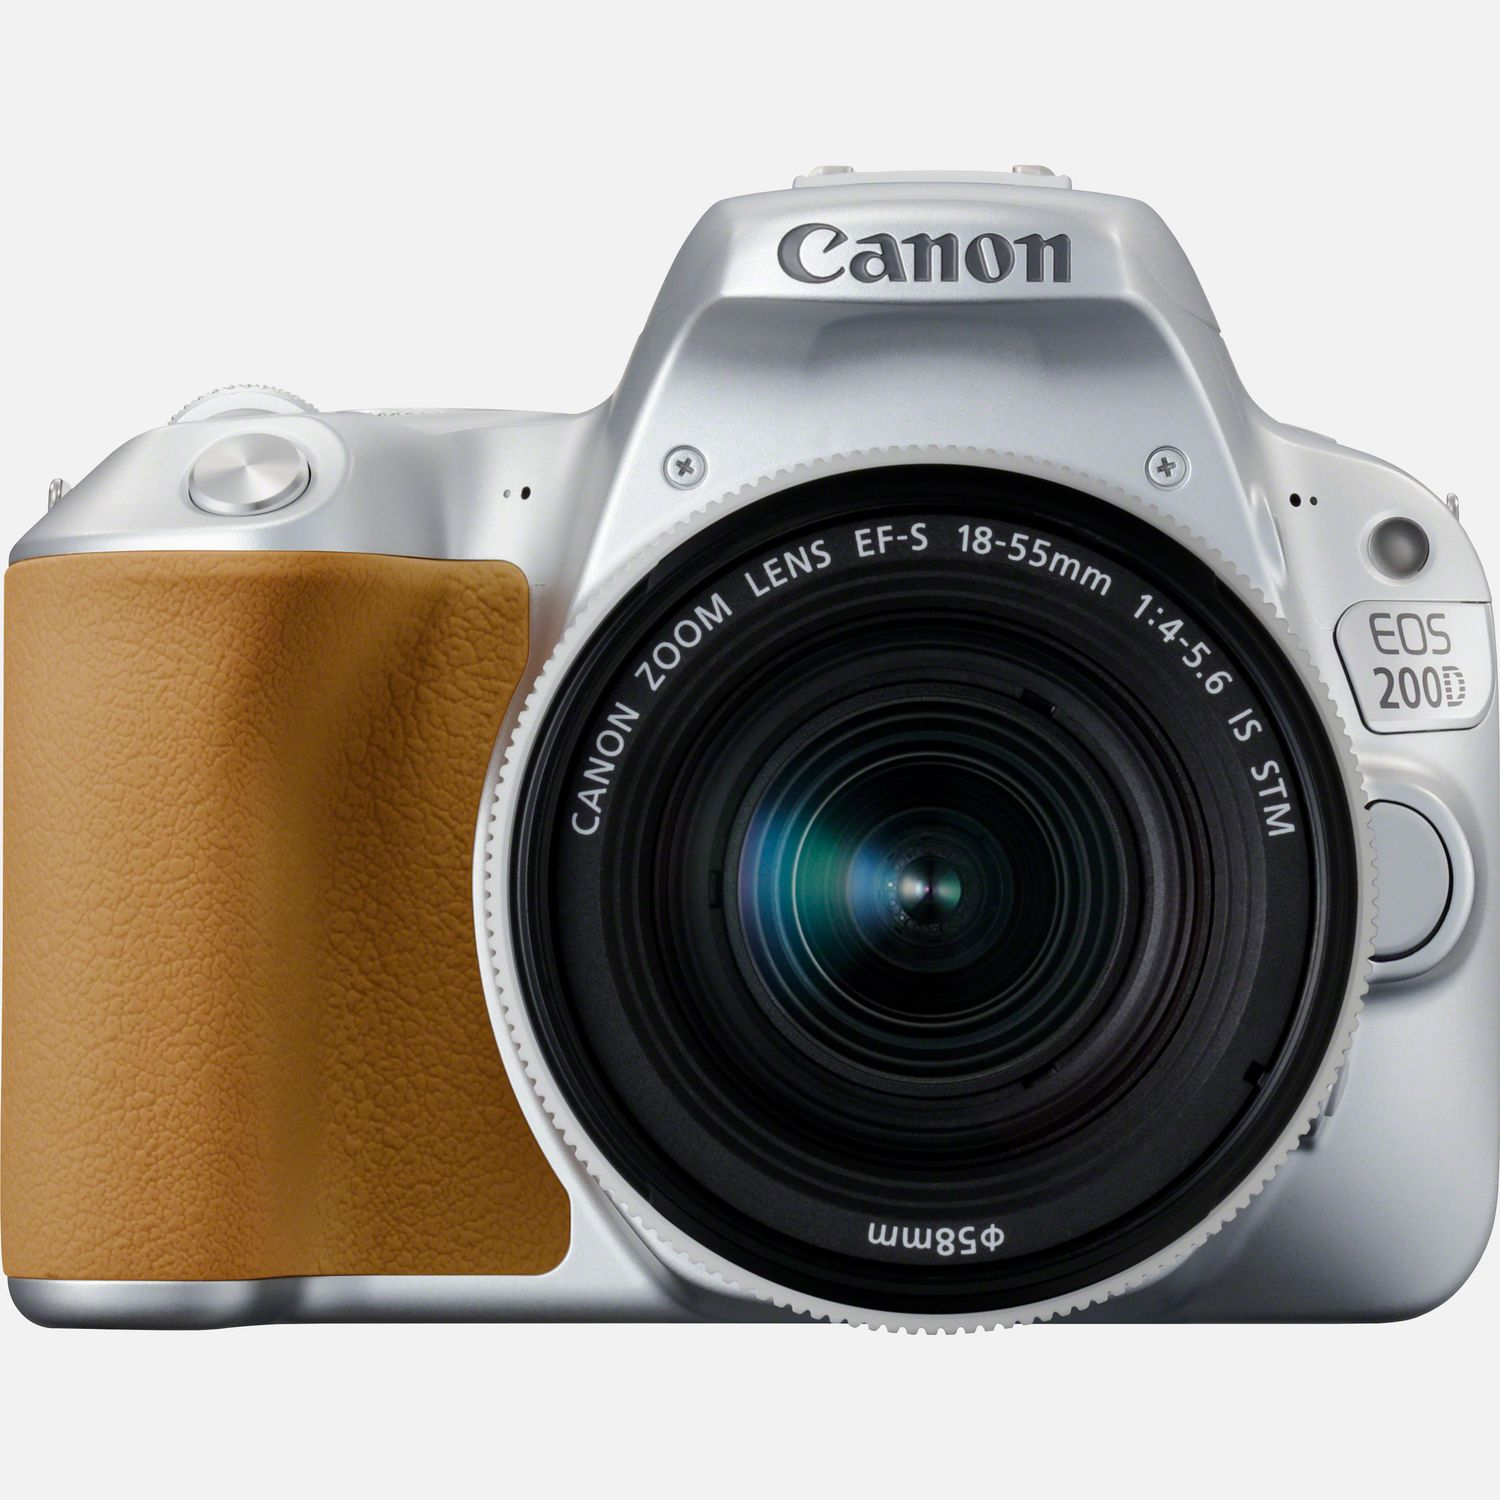 Image of Canon EOS 200D Silver and EF-S 18-55mm f/4-5.6 IS STM Lens Silver